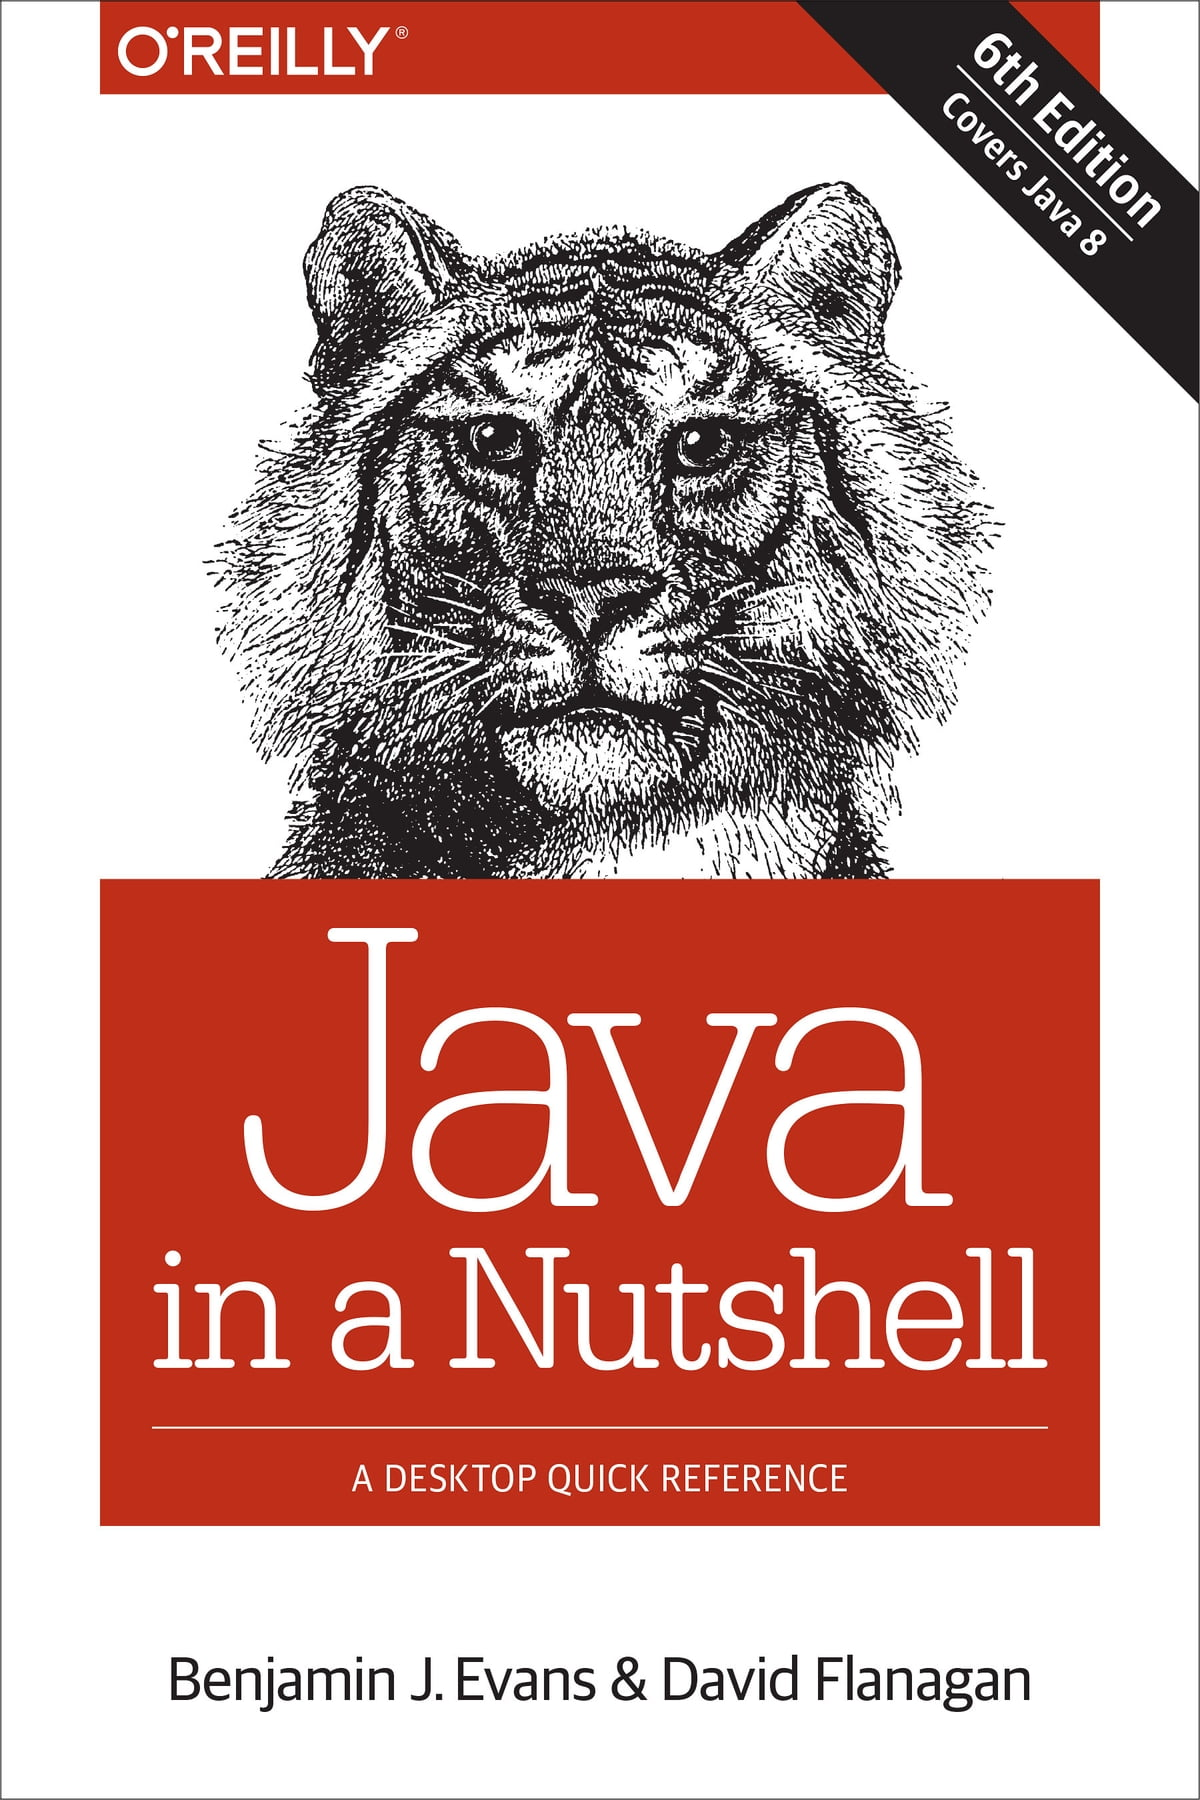 Java in a Nutshell eBook by Benjamin J Evans - 9781449371319 | Rakuten Kobo